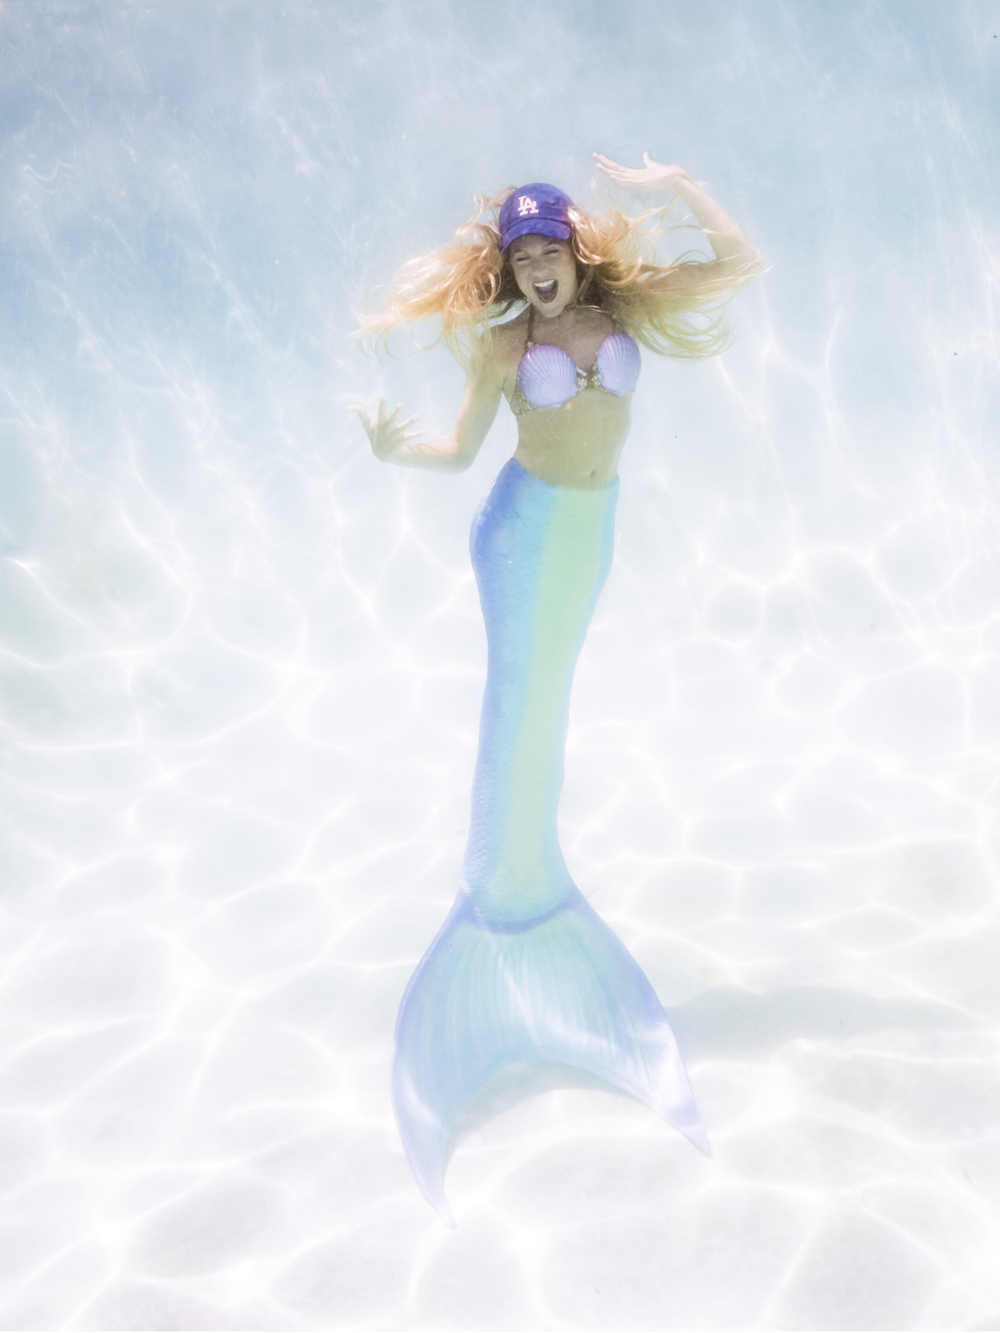 Mermaid Linden July 8, 2016-27.jpg